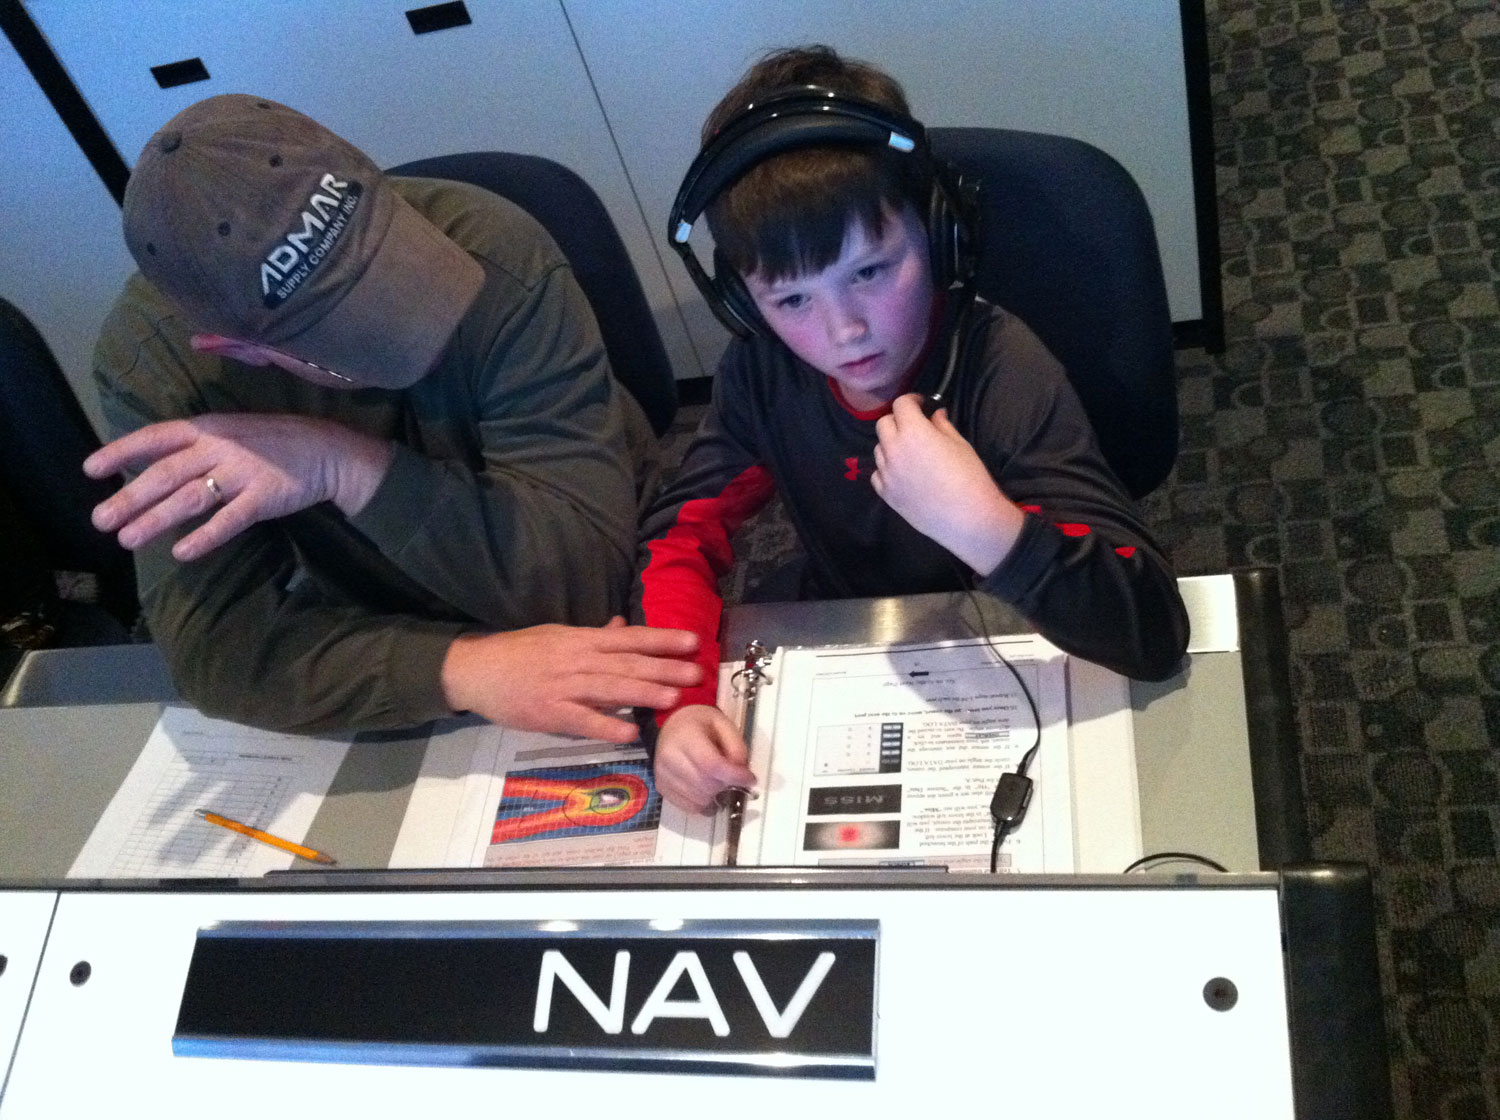 Young navigators are responsible for guiding our spacecraft on its journey.